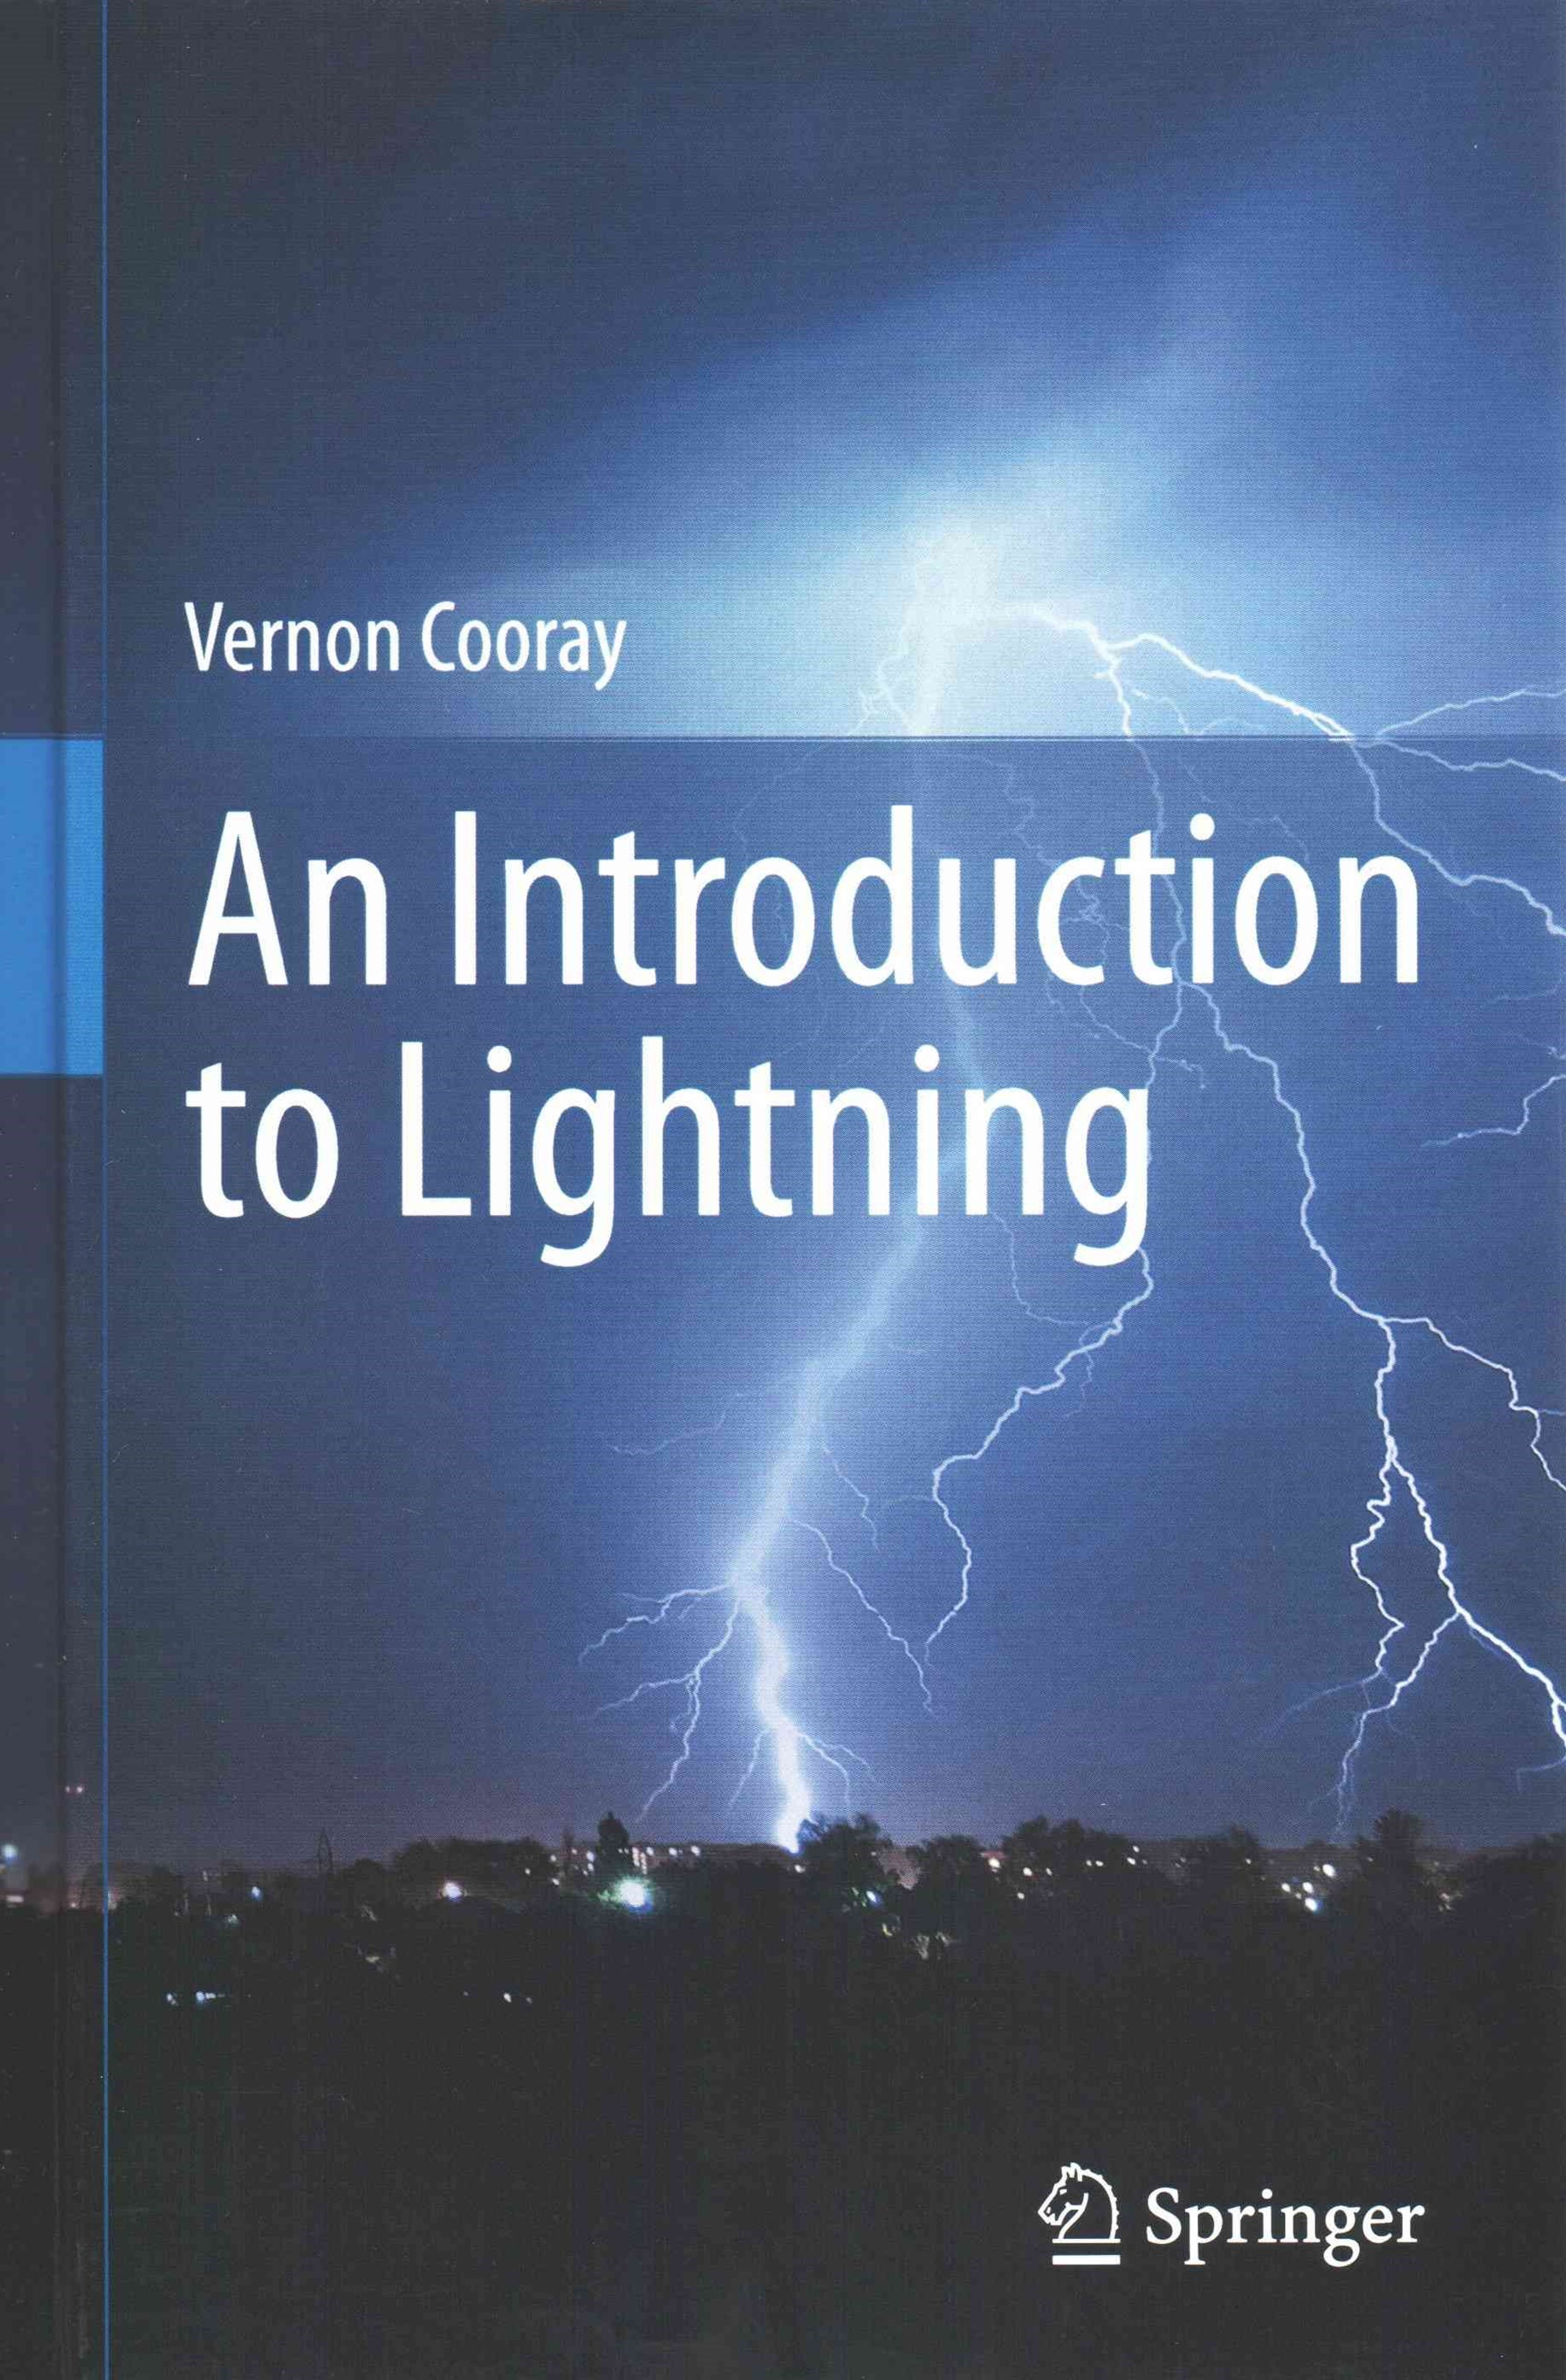 Introduction to Lightning